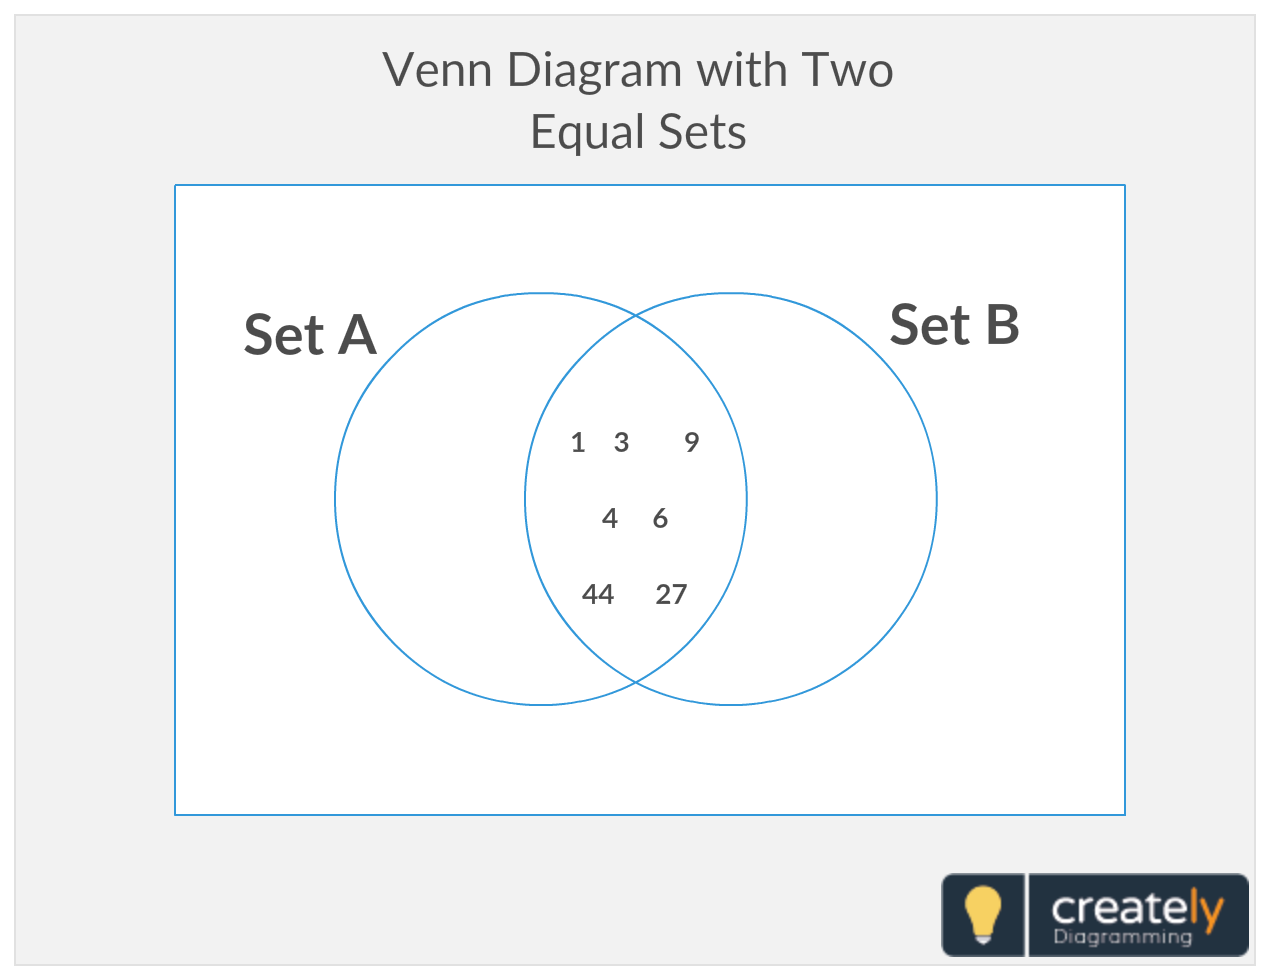 medium resolution of venn diagram with two equal sets a venn diagram is a diagram that shows all possible logical relations between a finite collection of different sets